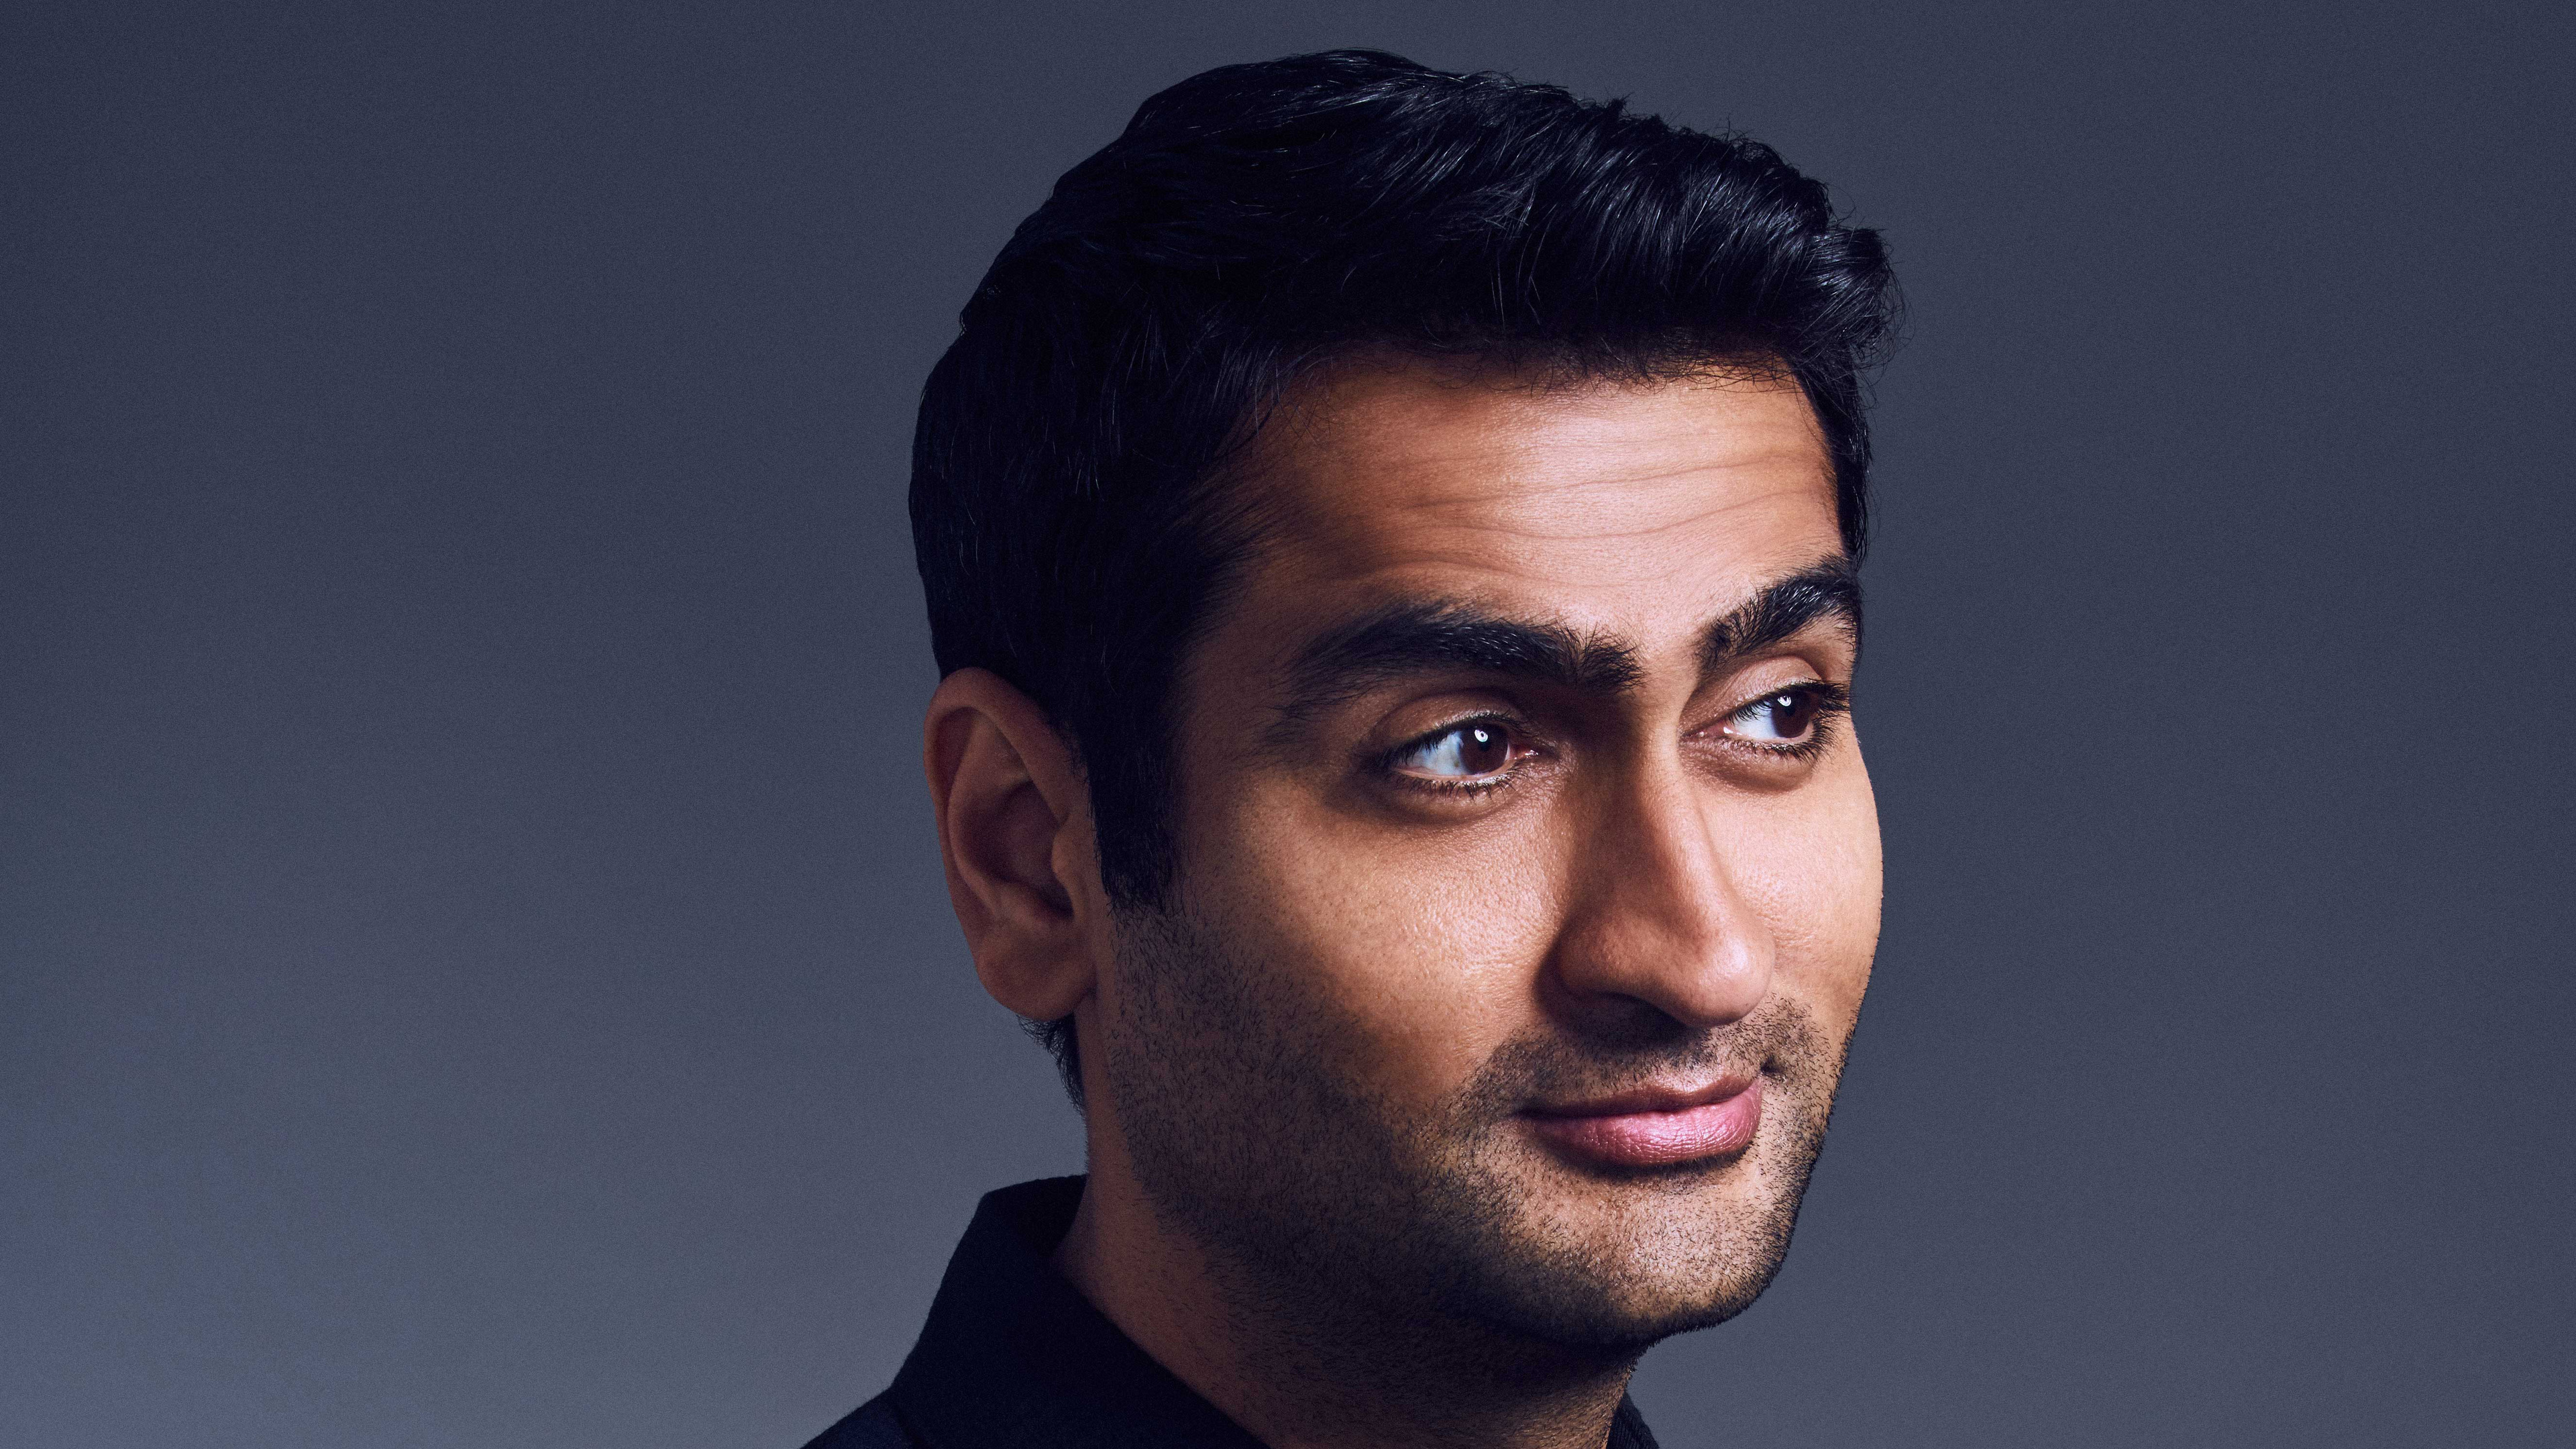 kumail nanjiani 1536946359 - Kumail Nanjiani - male celebrities wallpapers, kumail nanjiani wallpapers, hd-wallpapers, boys wallpapers, 5k wallpapers, 4k-wallpapers